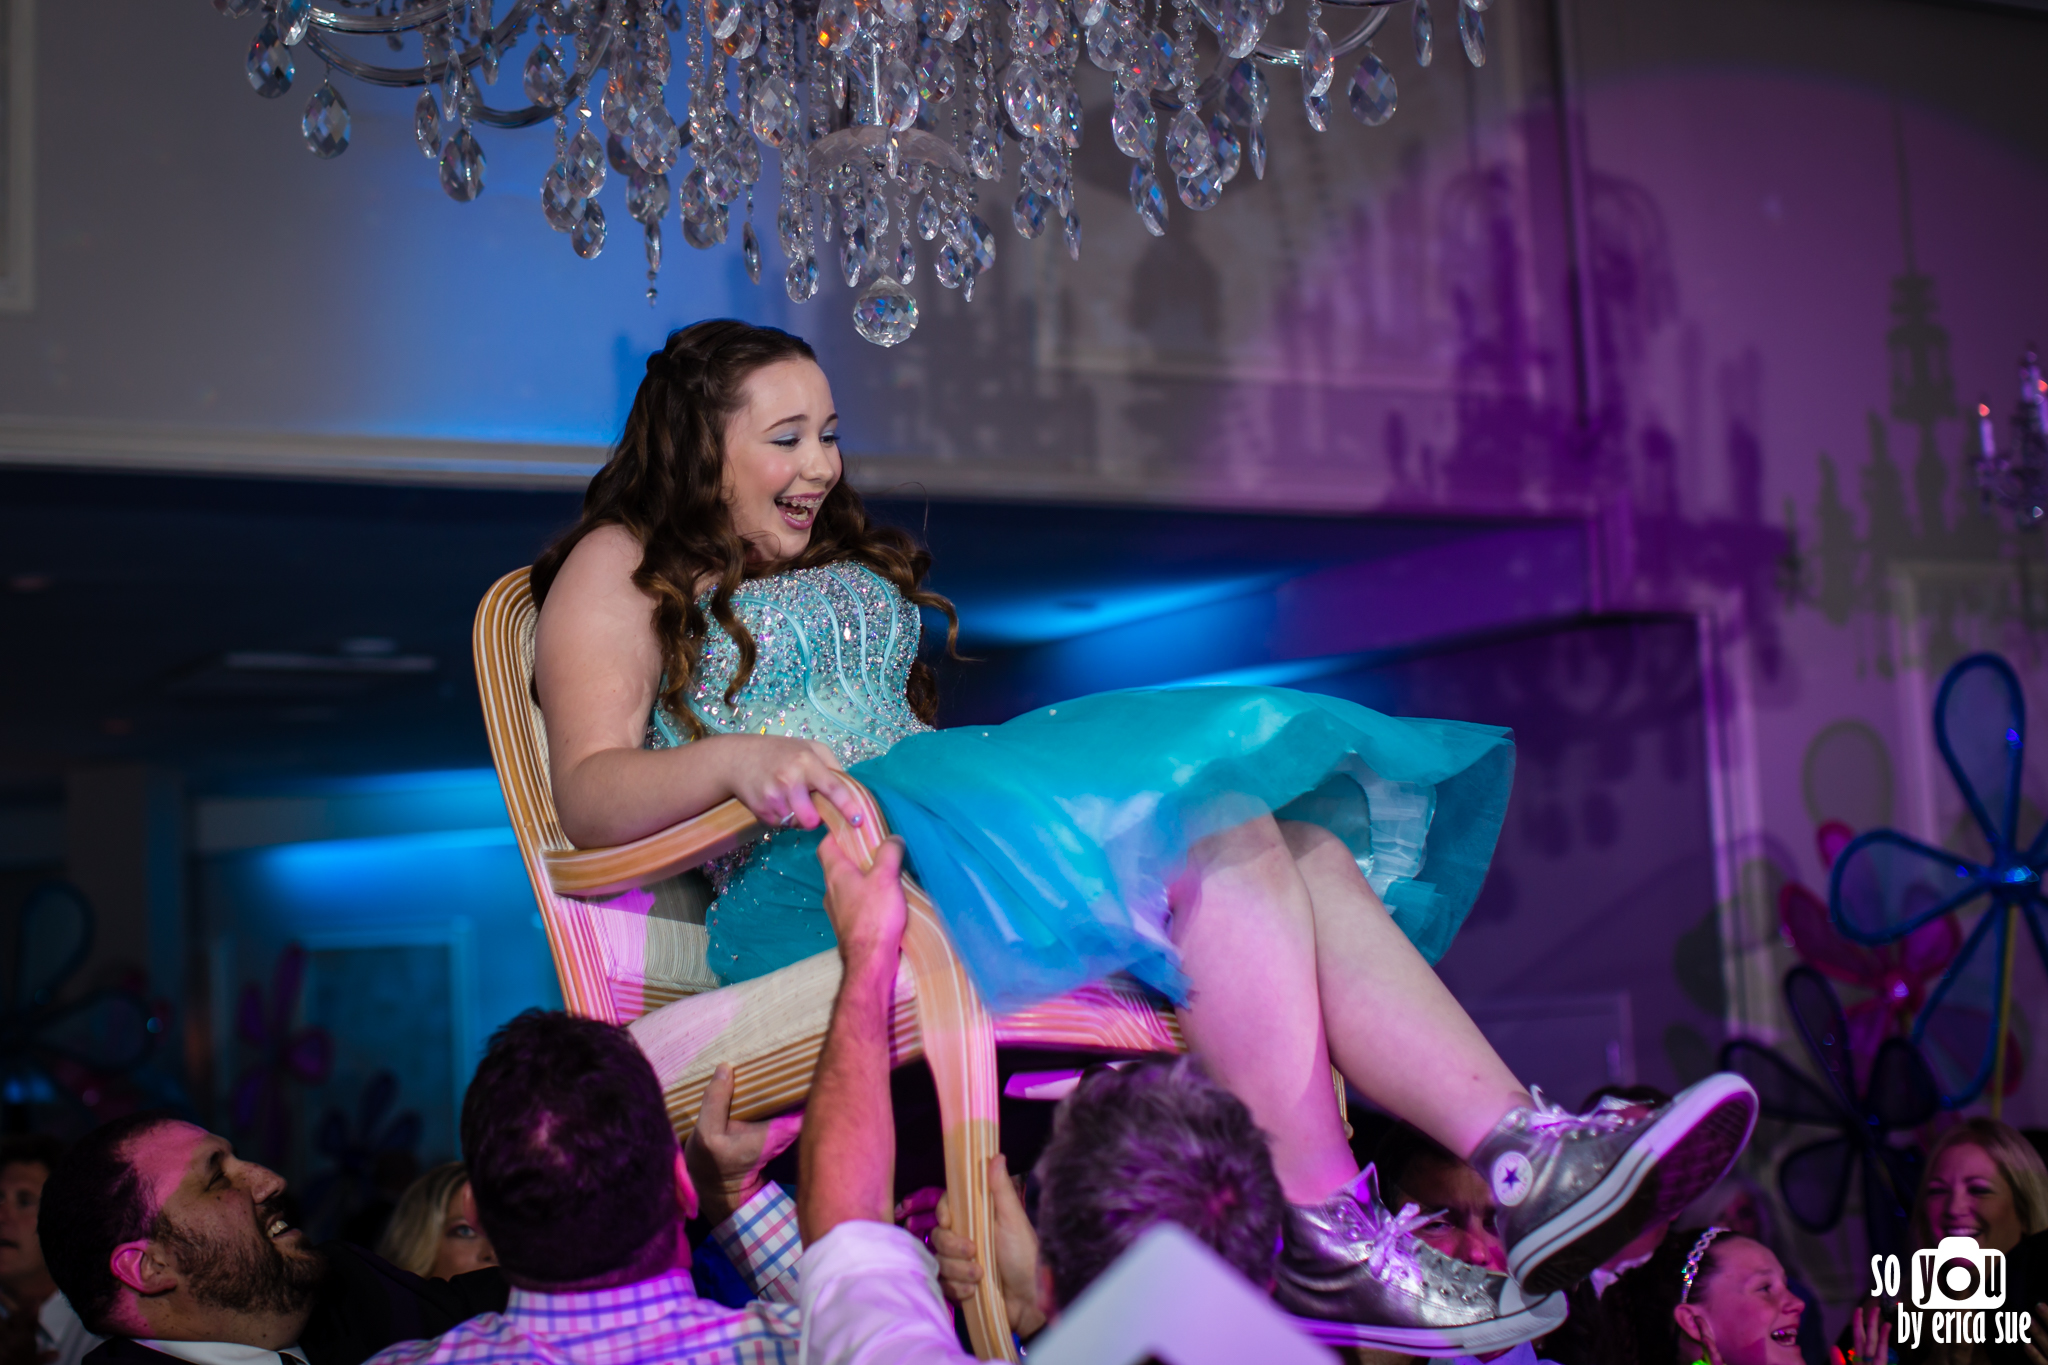 bat-mitzvah-photography-south-florida-broward-kol-ami-plantation-so-you-by-erica-sue-1084.jpg